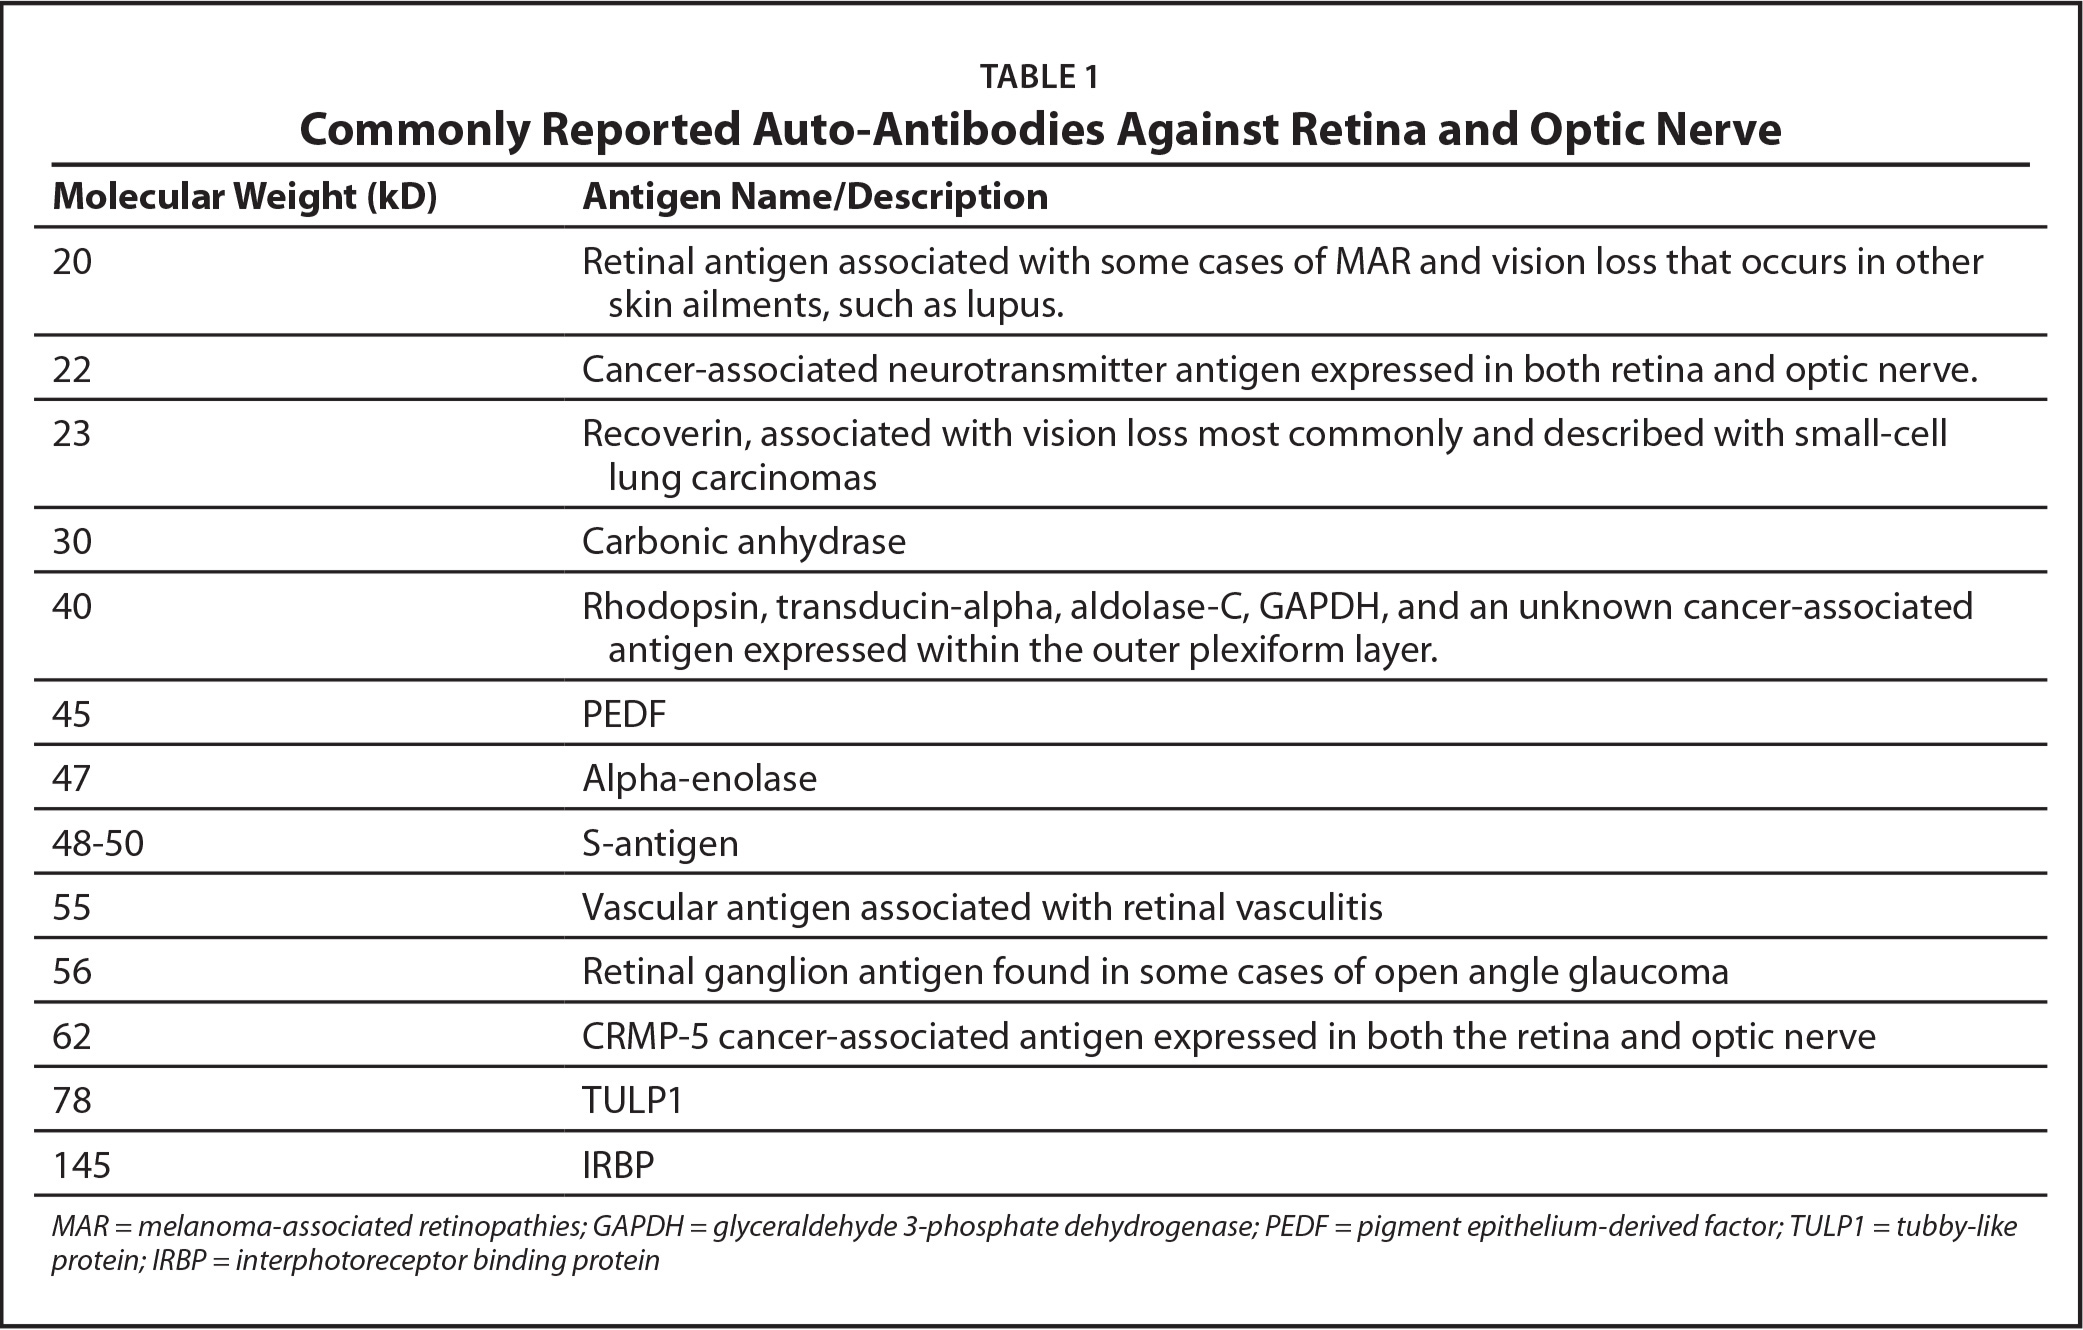 Commonly Reported Auto-Antibodies Against Retina and Optic Nerve